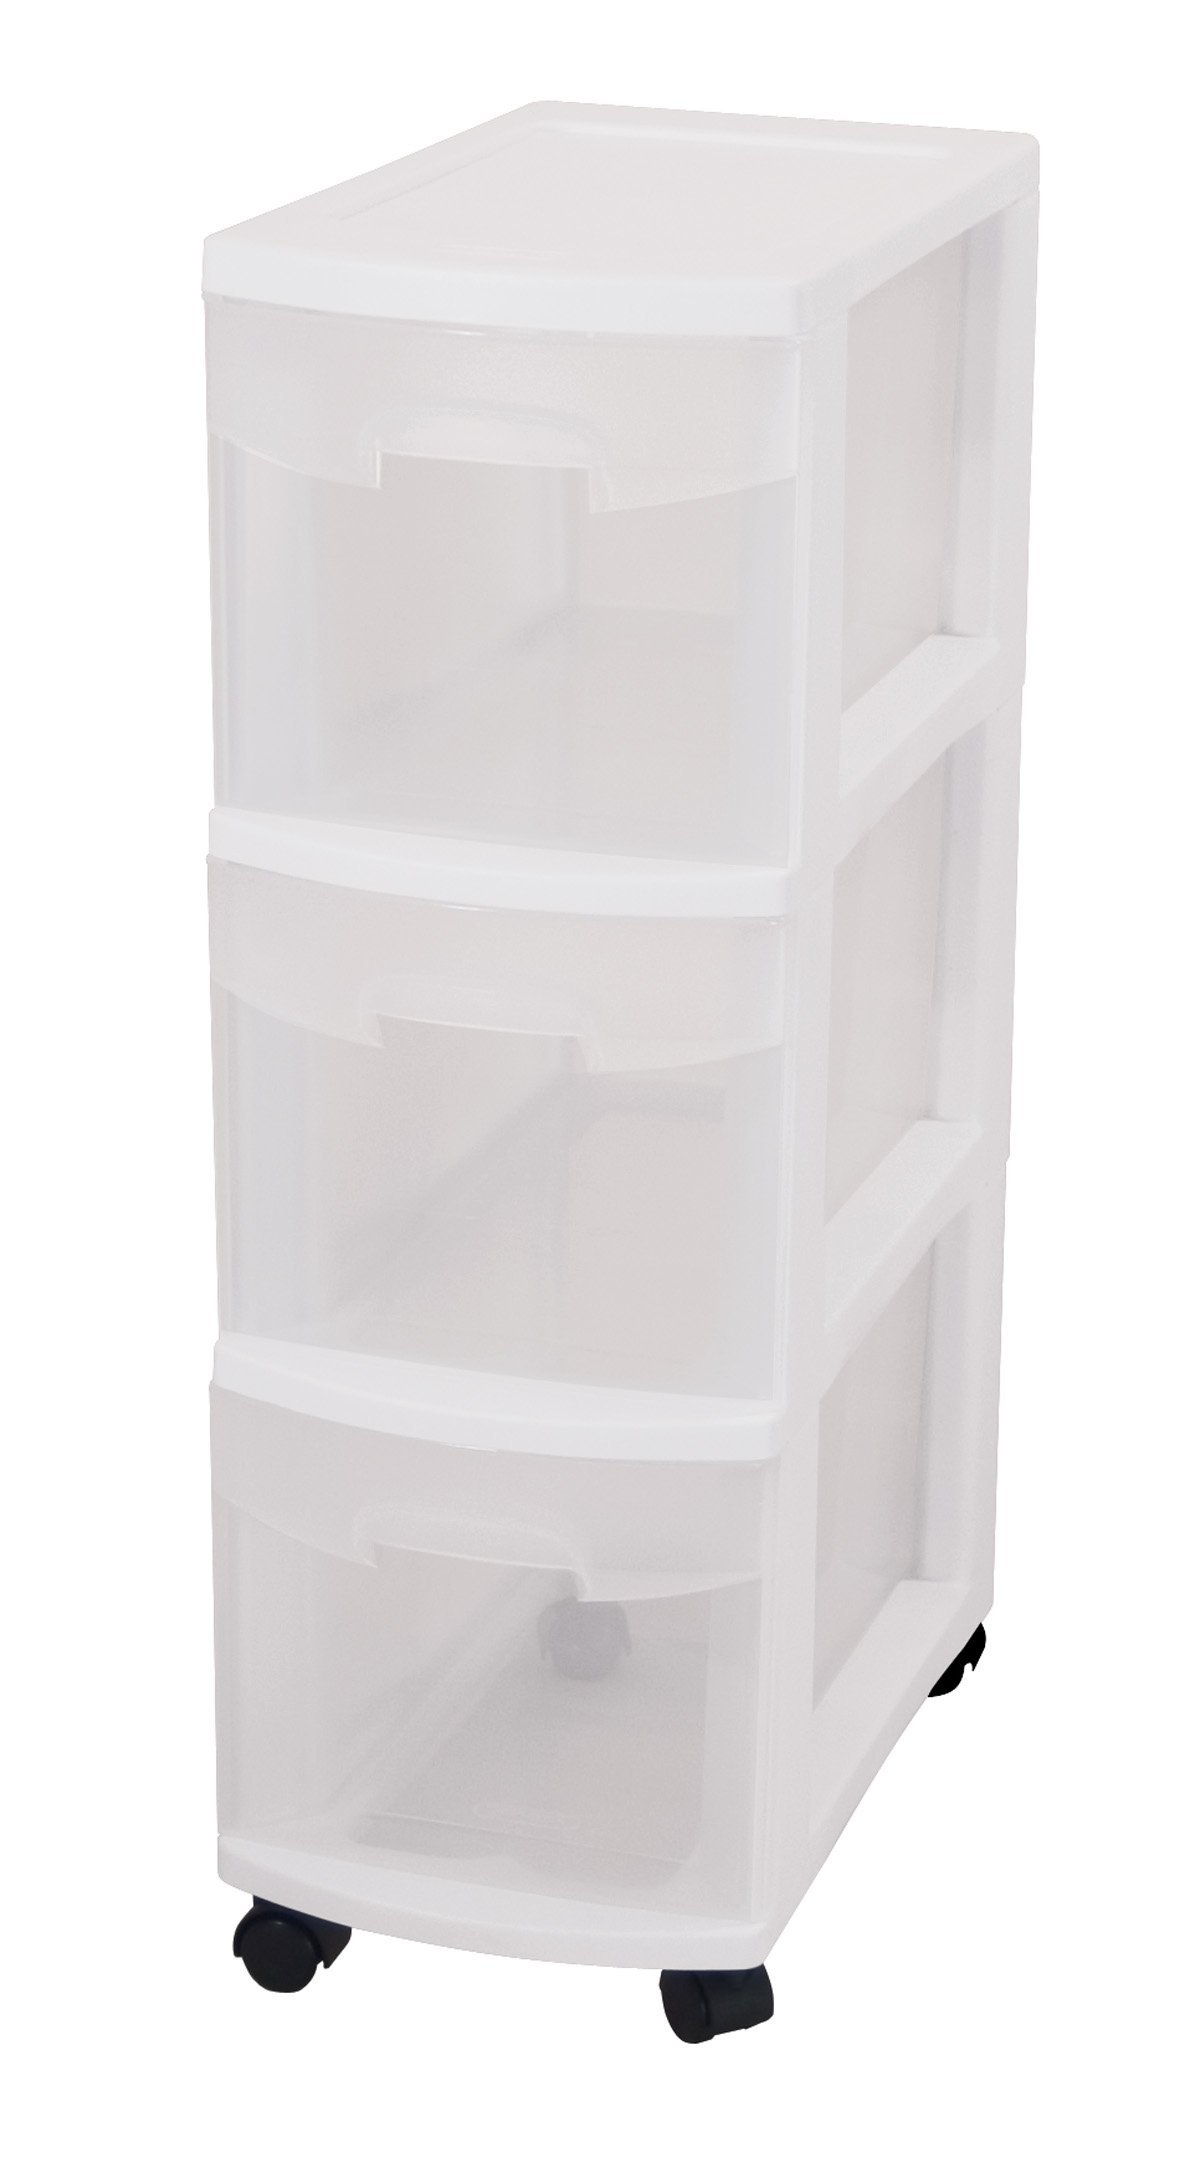 Merveilleux Sterilite 27308003 3 Drawer Narrow Cart With See Through Drawers And Black  Casters,